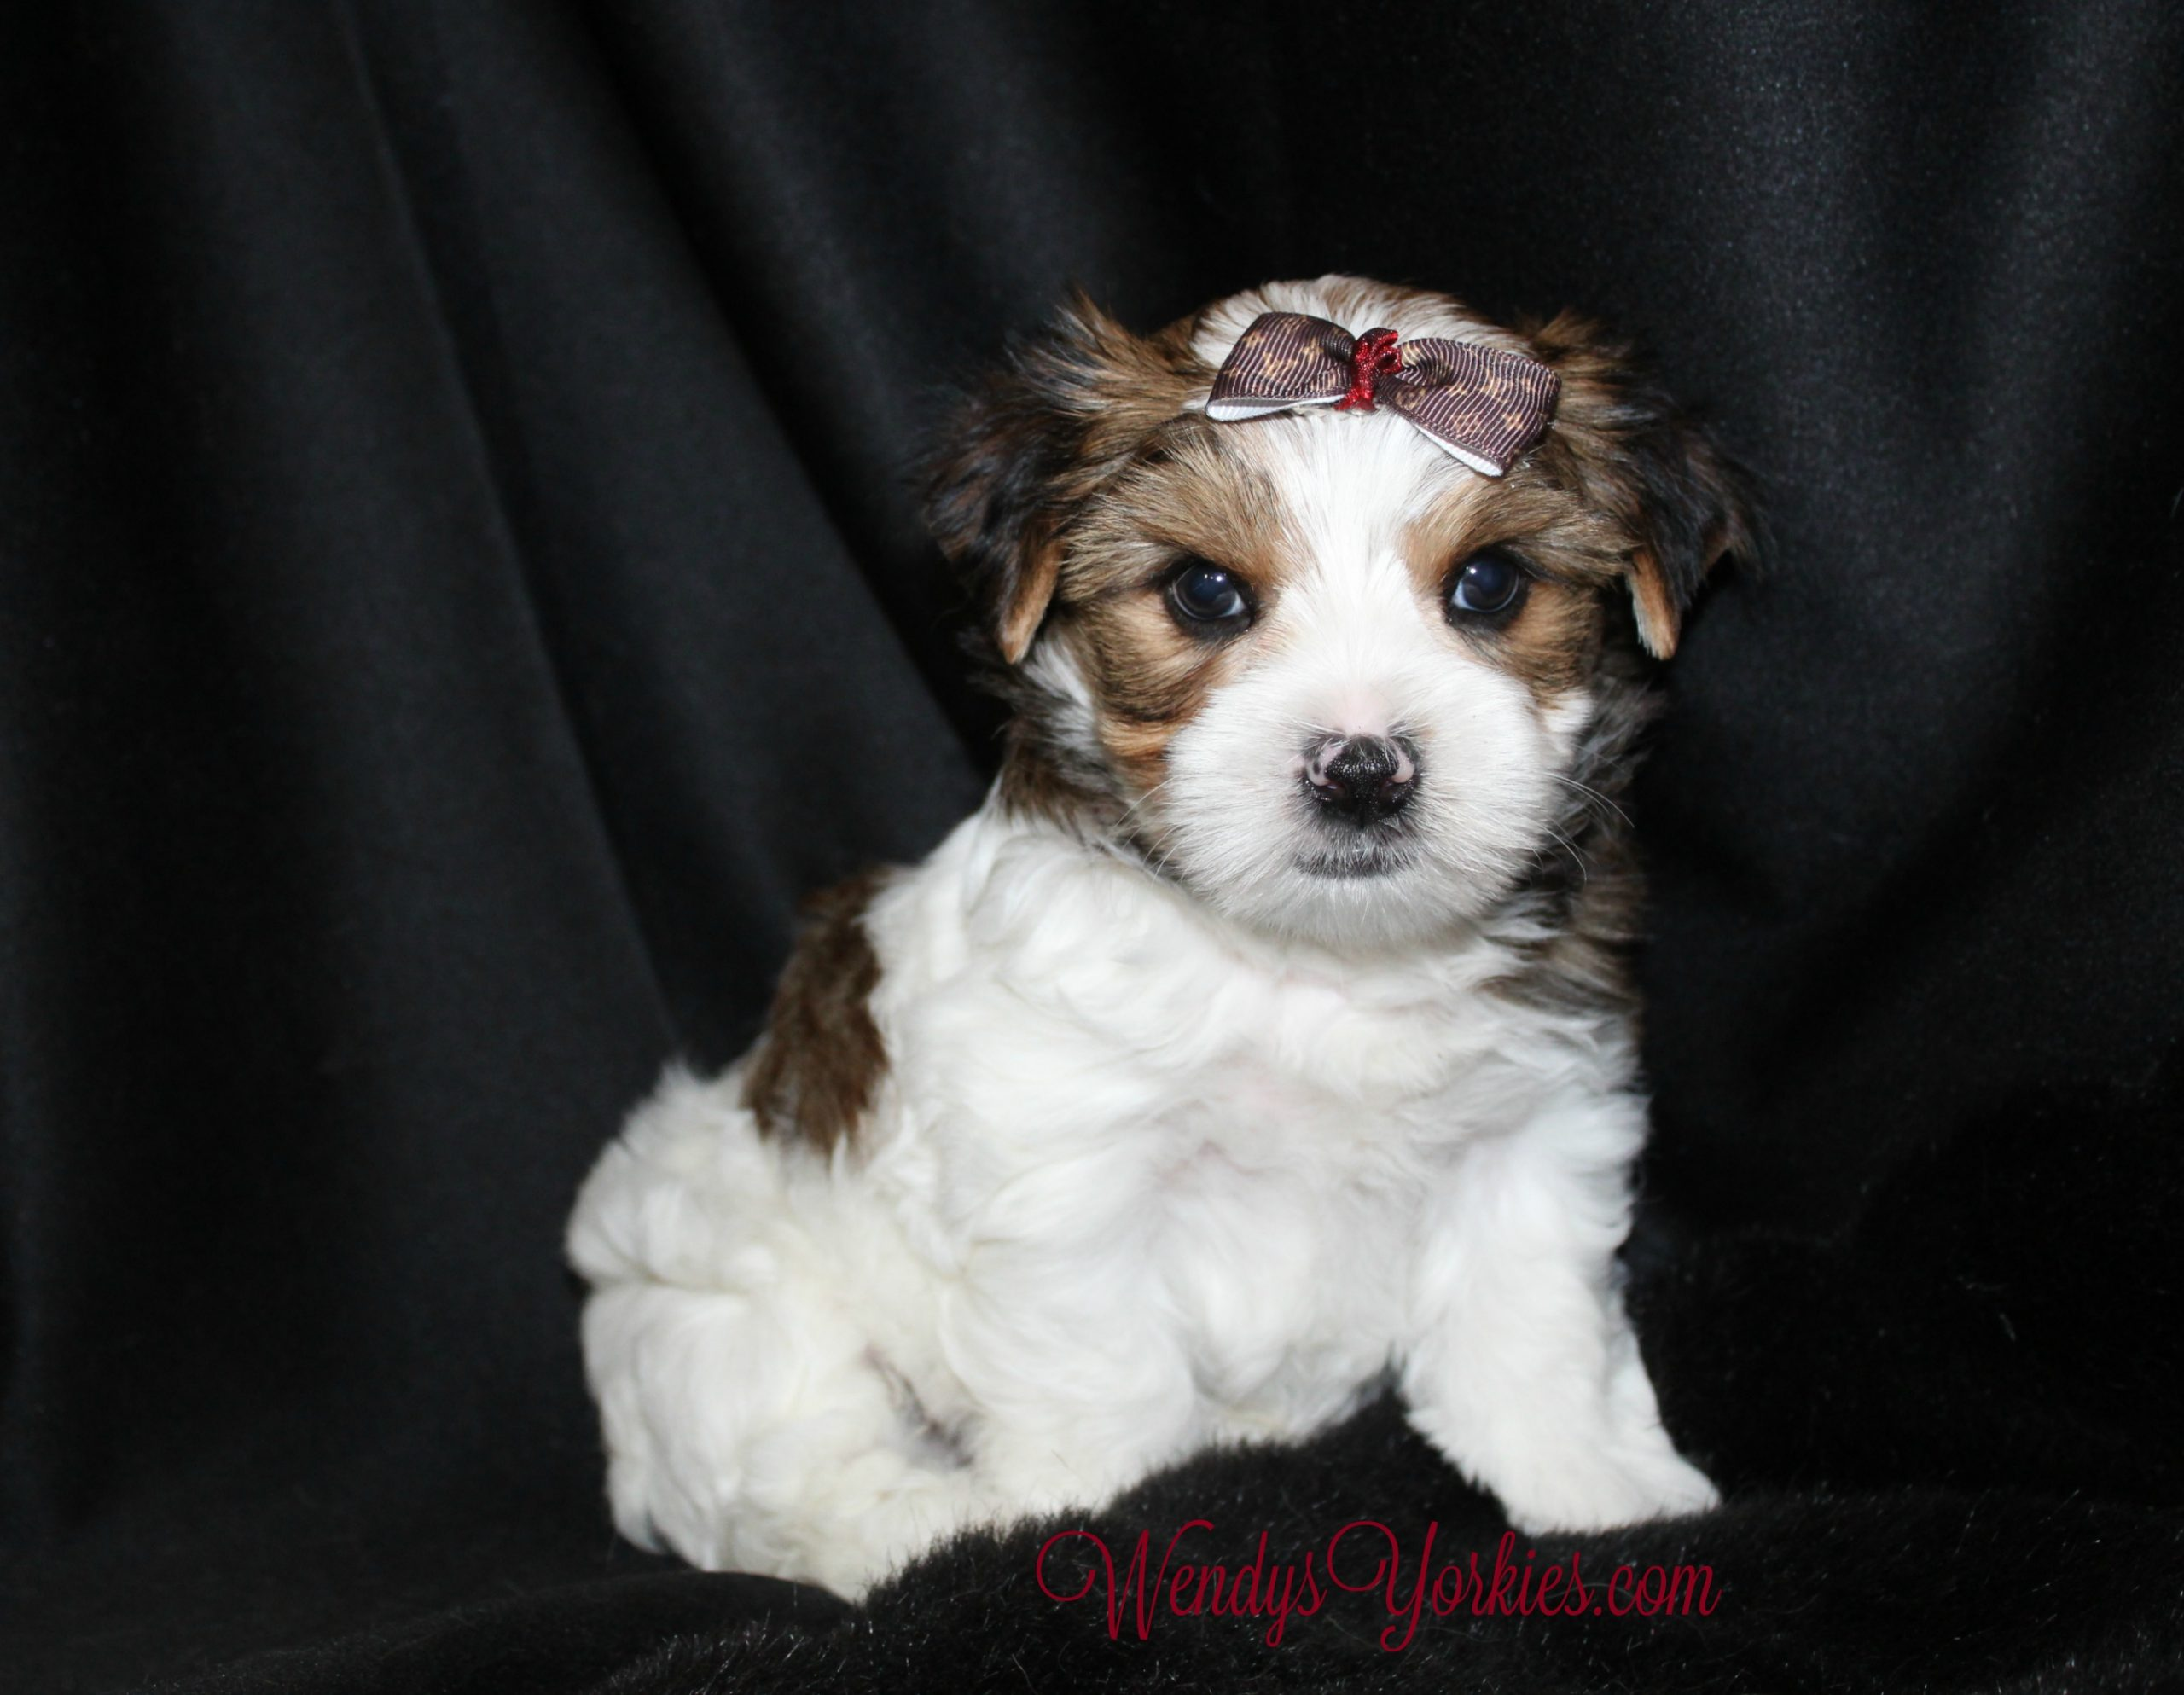 Parti Yorkie puppy for sale in Texas, Reese m1, WendysYorkies.com